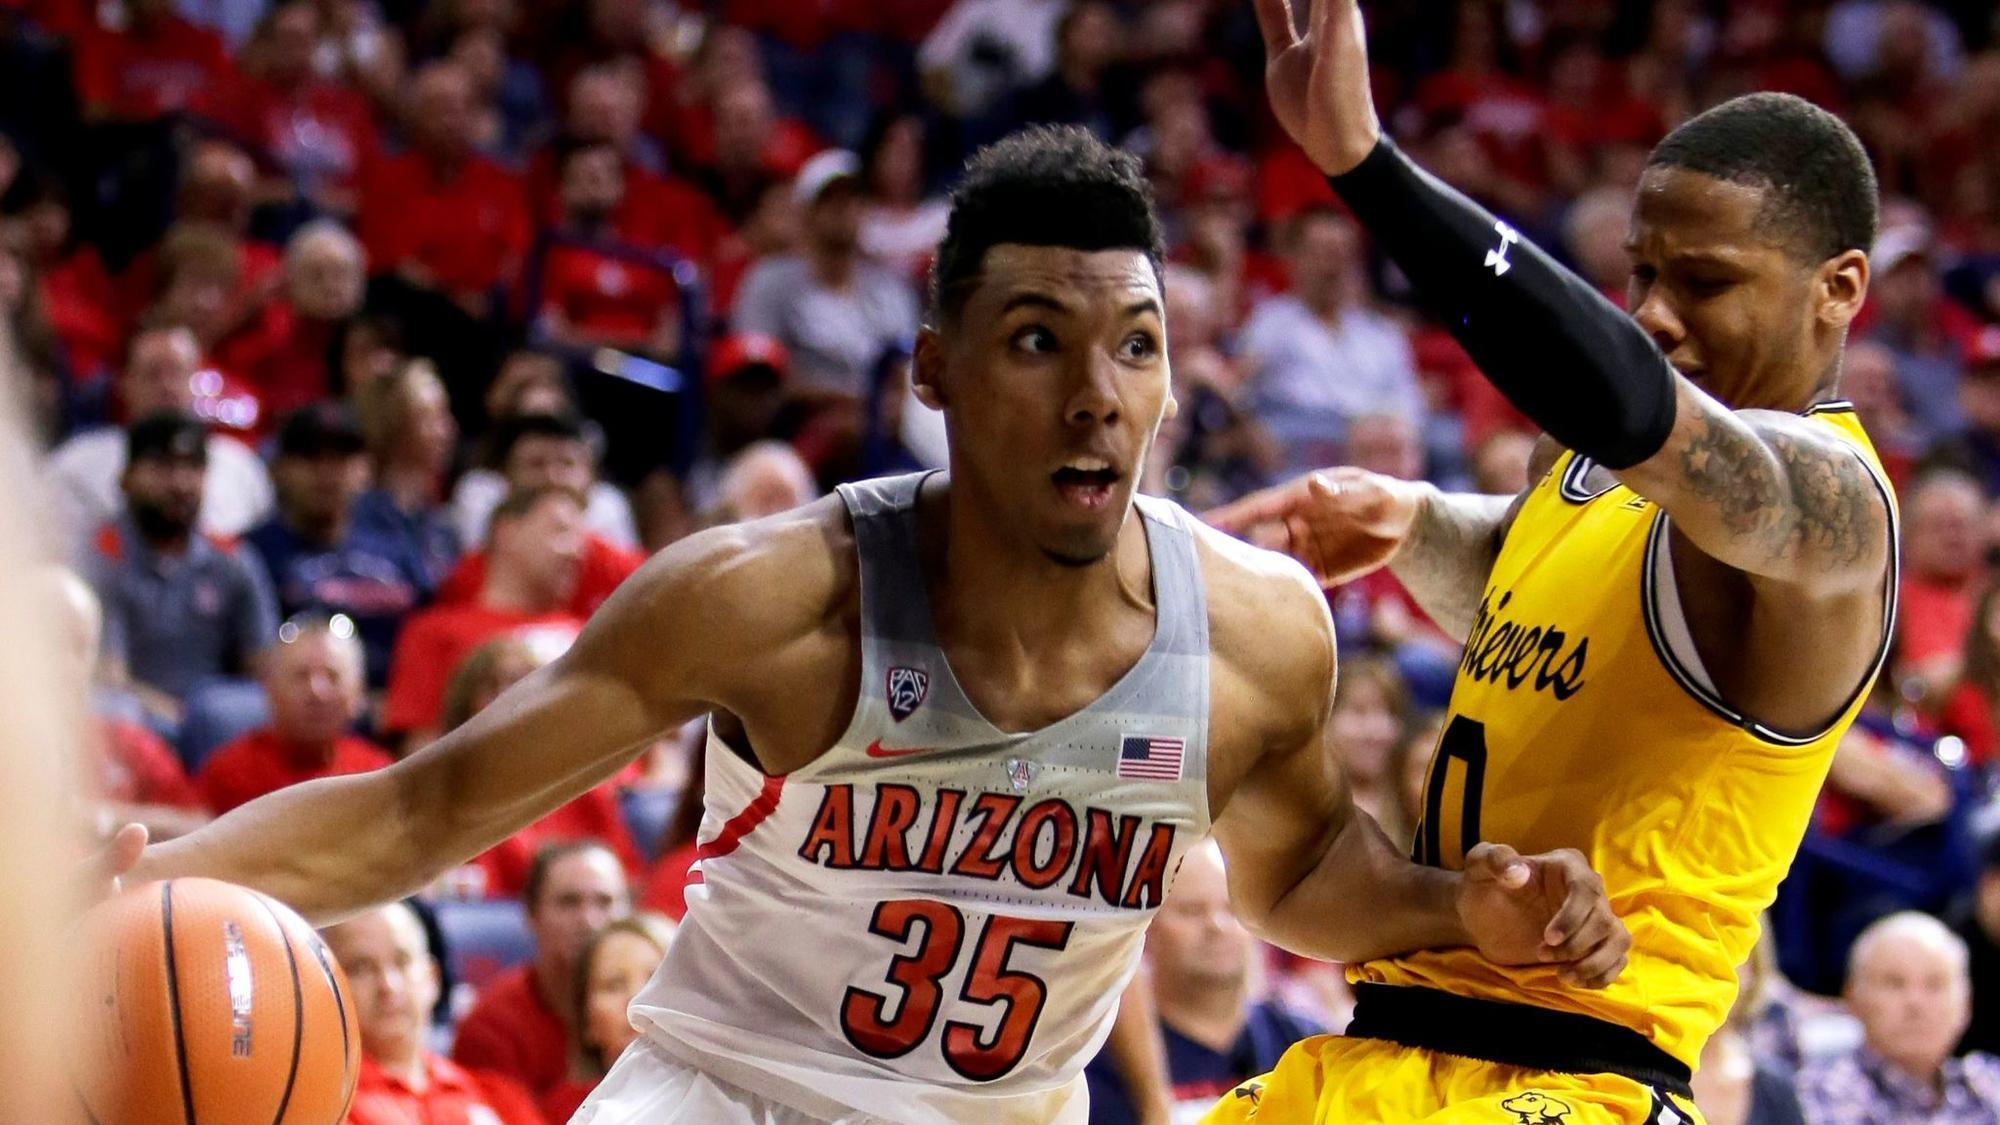 State basketball roundup (Nov. 12): UMBC hangs with No. 3 Arizona for a half in 103-78 loss